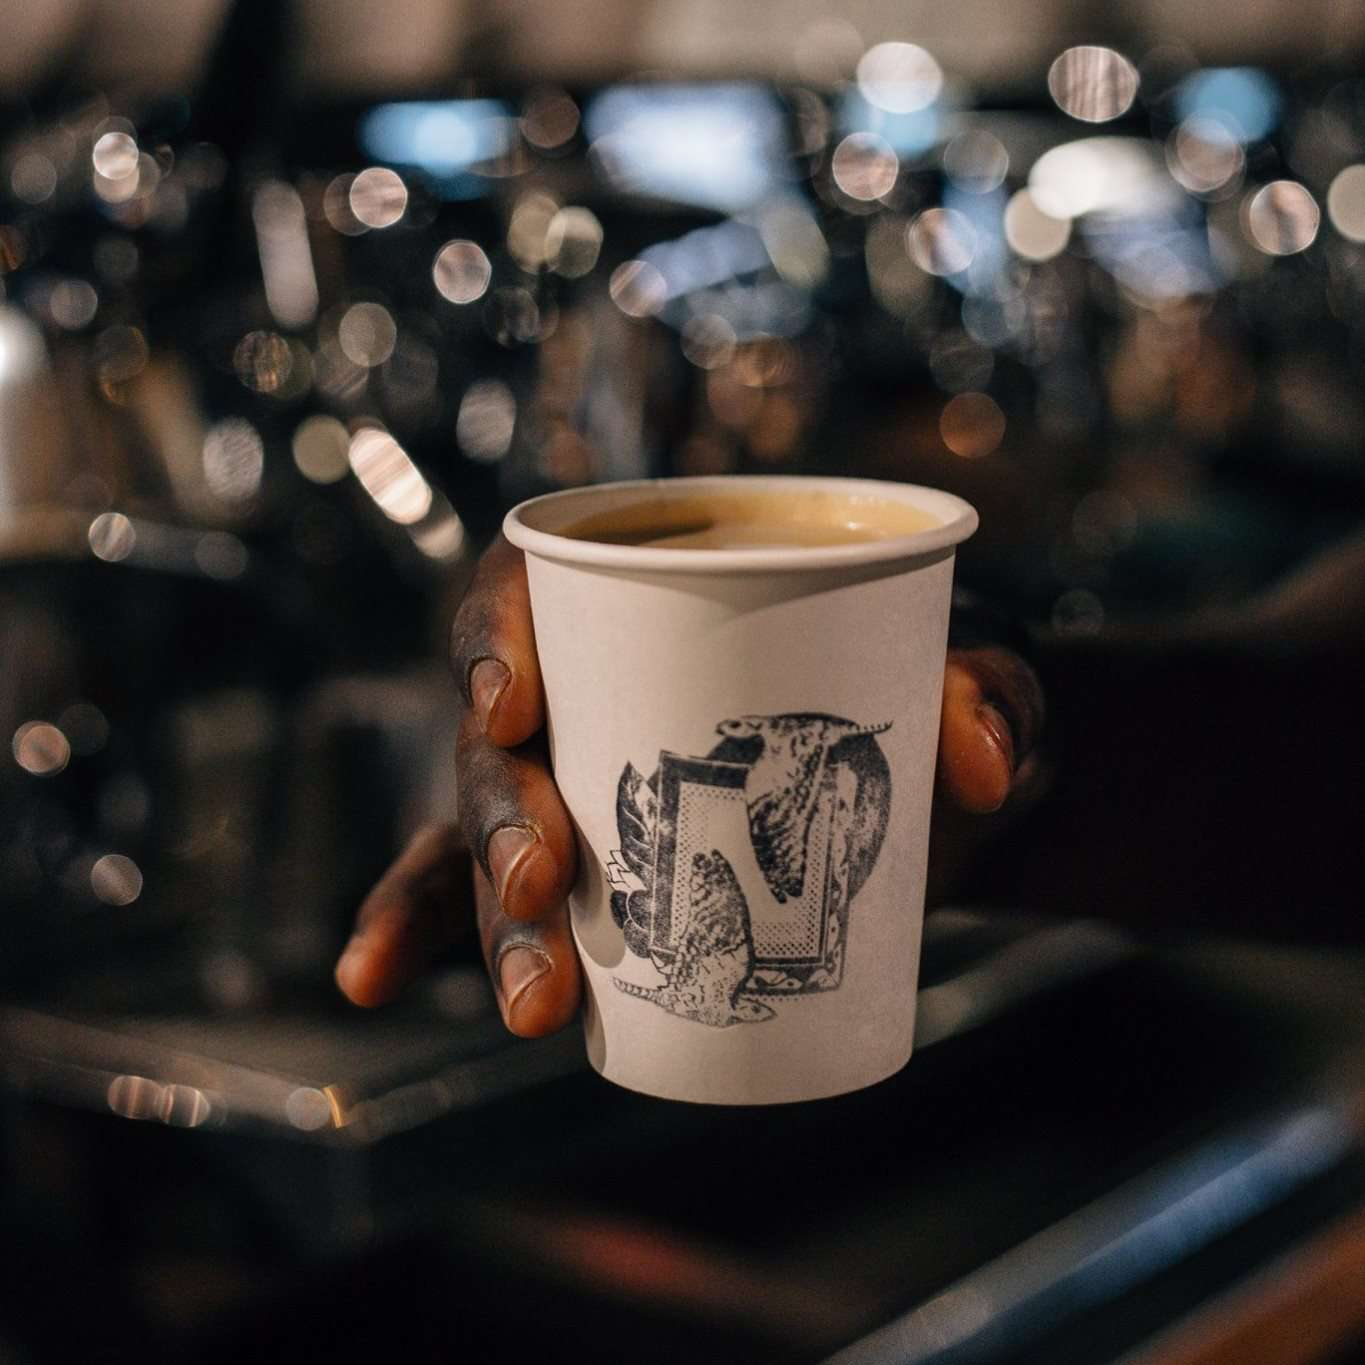 Dark skinned hand hoding a paper cup decorated with an ornate